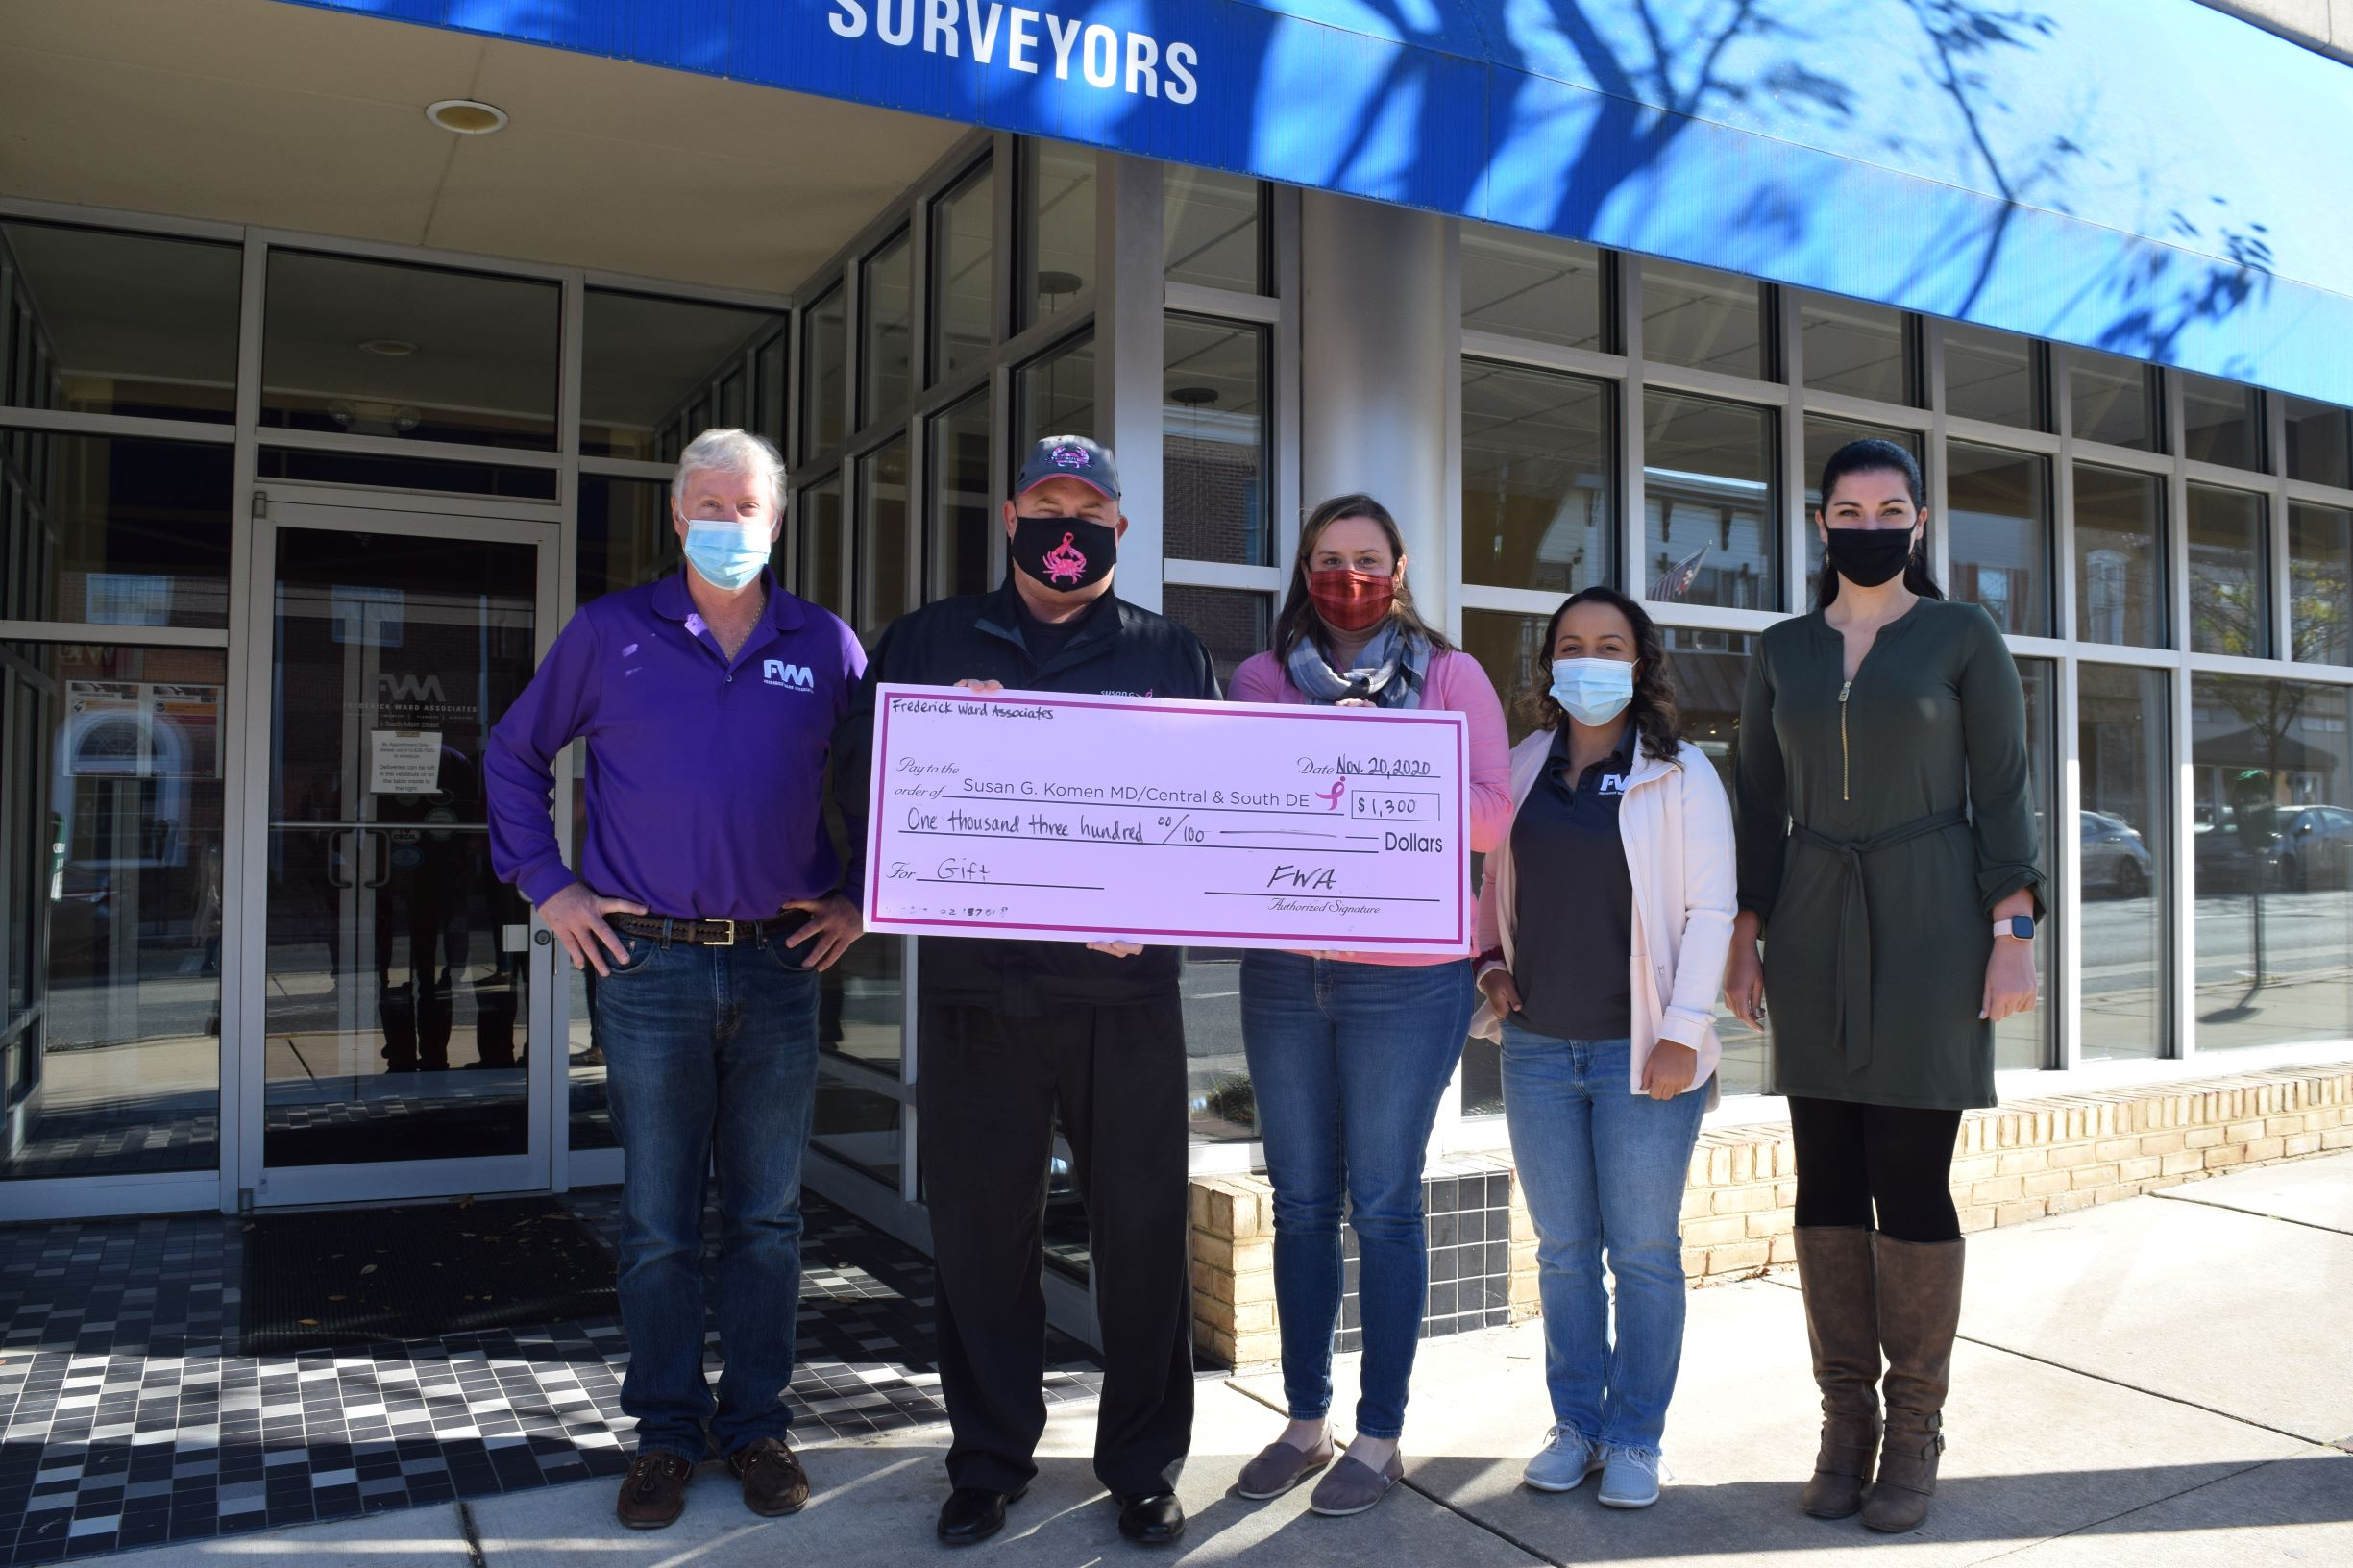 FWA donated $1,300 to the Susan G. Komen Foundation from funds raised from the Walktober Challenge.